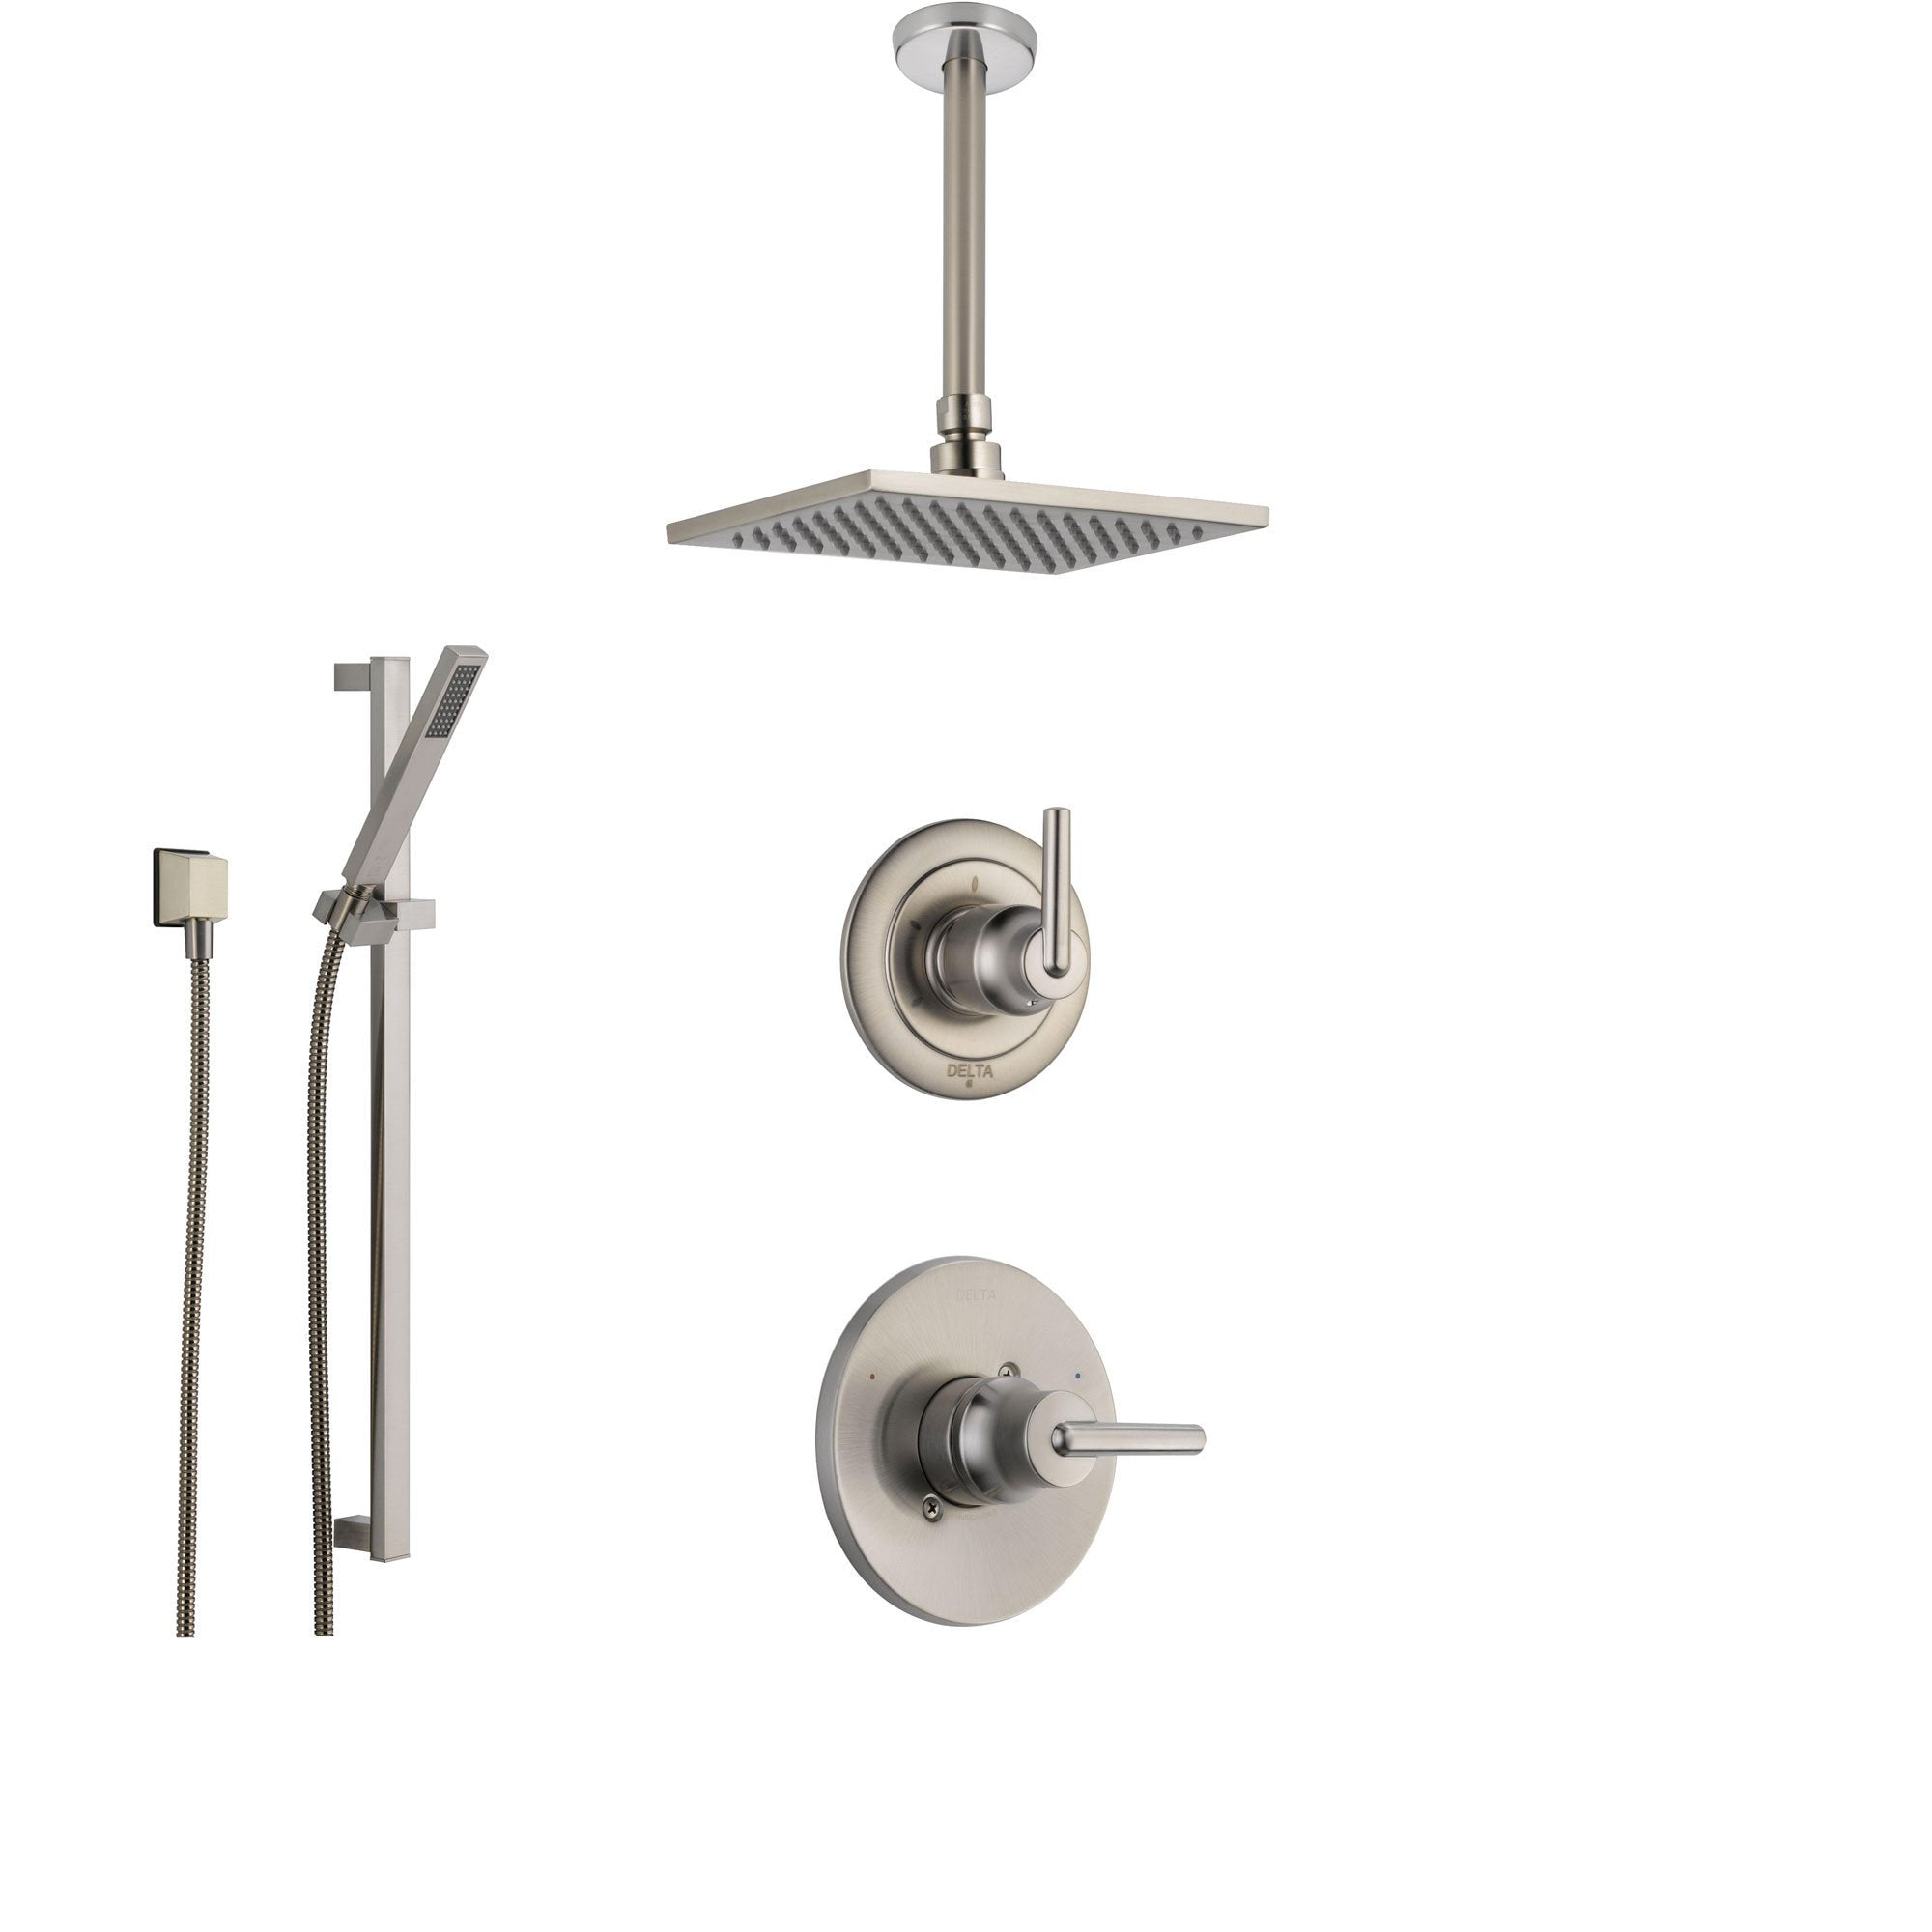 Delta Trinsic Stainless Steel Shower System with Normal Shower Handle, 3-setting Diverter, Modern Square Ceiling Mount Showerhead, and Hand Shower Spray SS145985SS